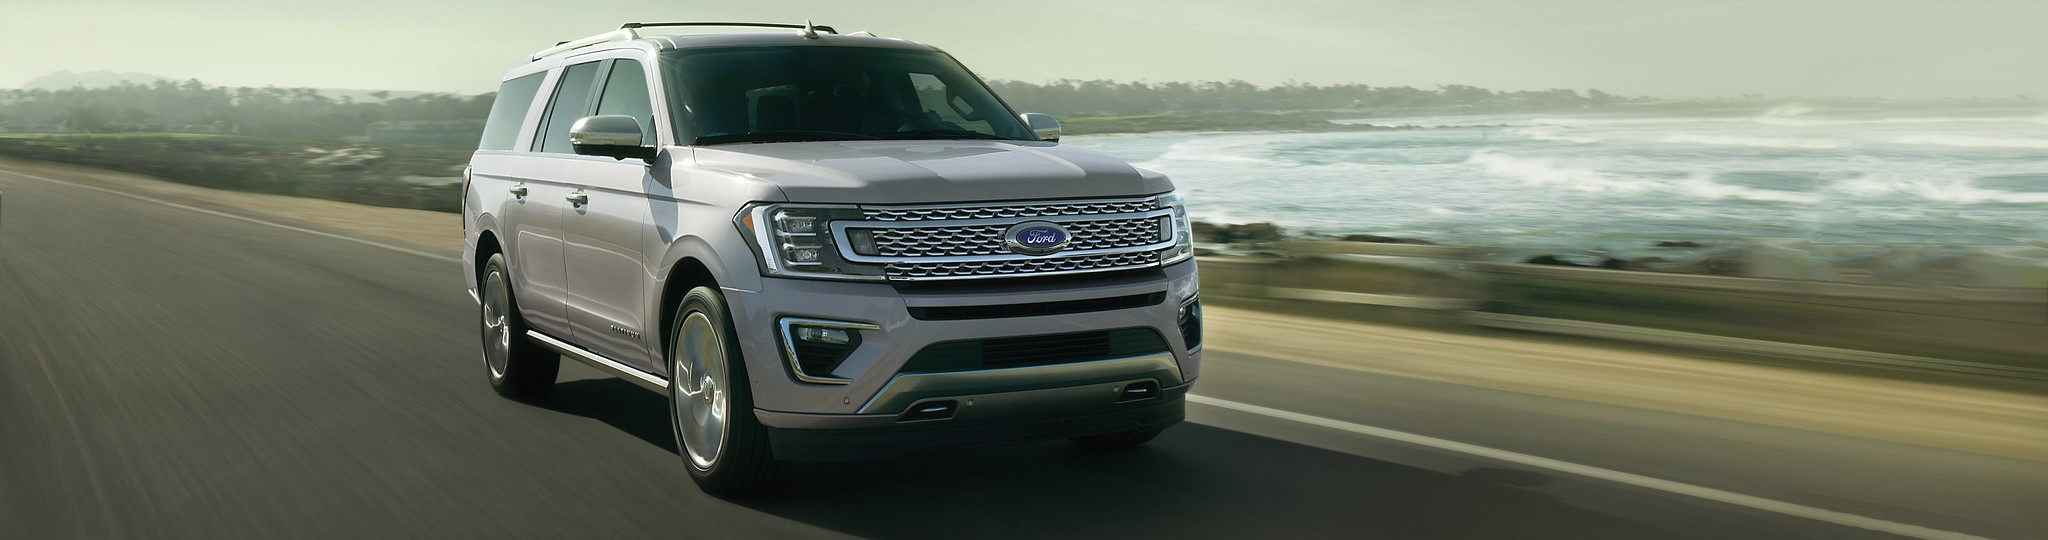 2020 Ford Expedition - Toronto, ON